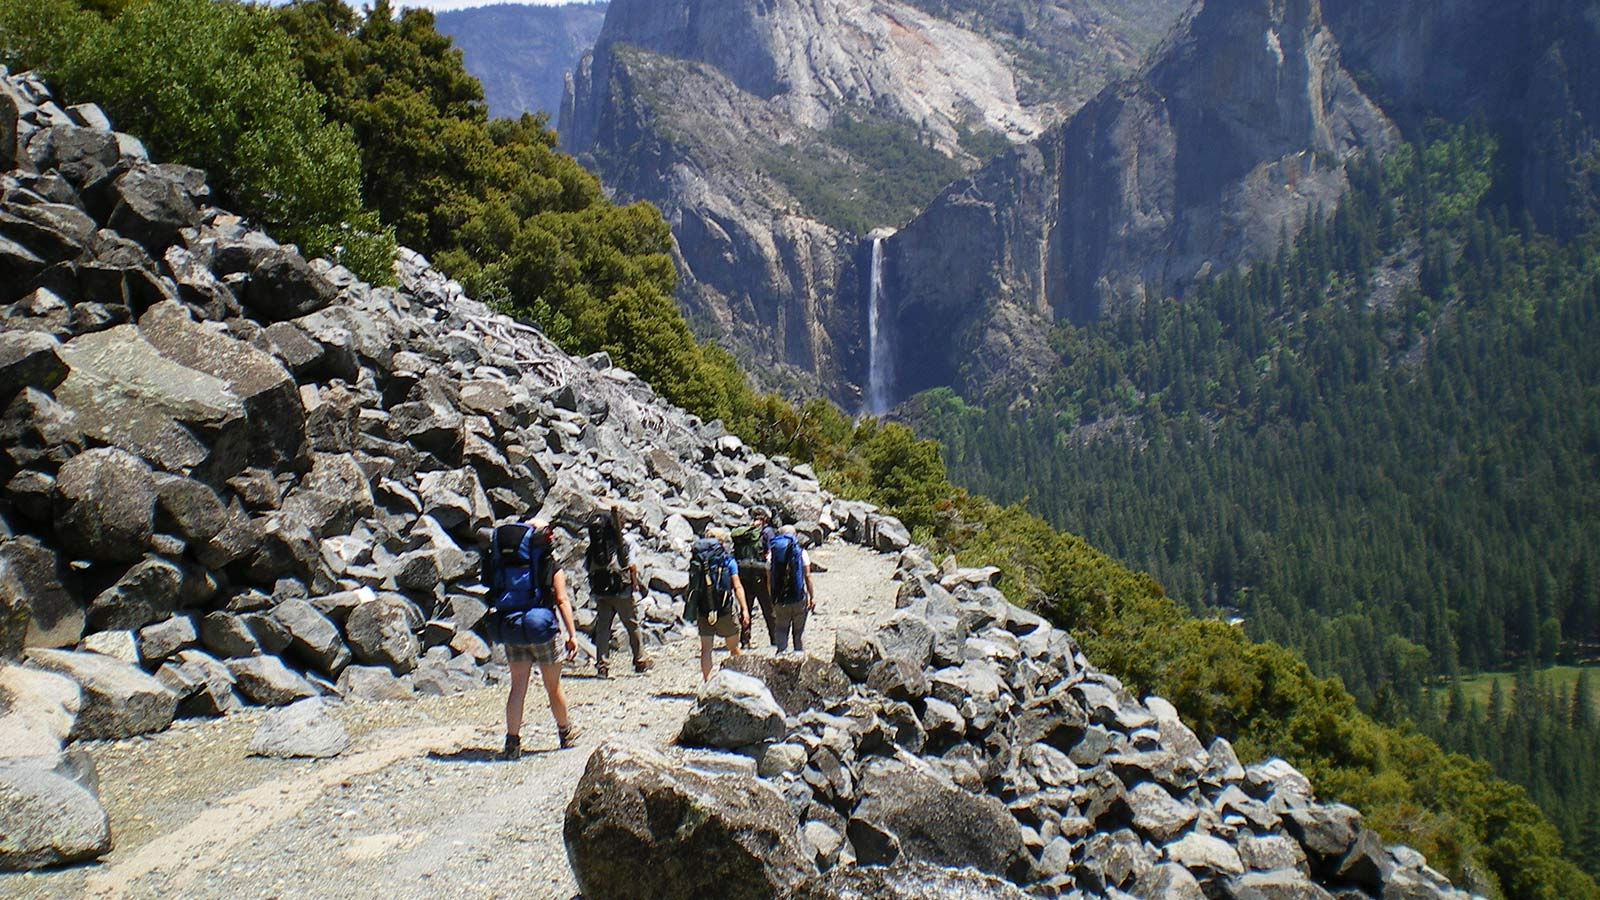 Guided backpacking trip in Yosemite